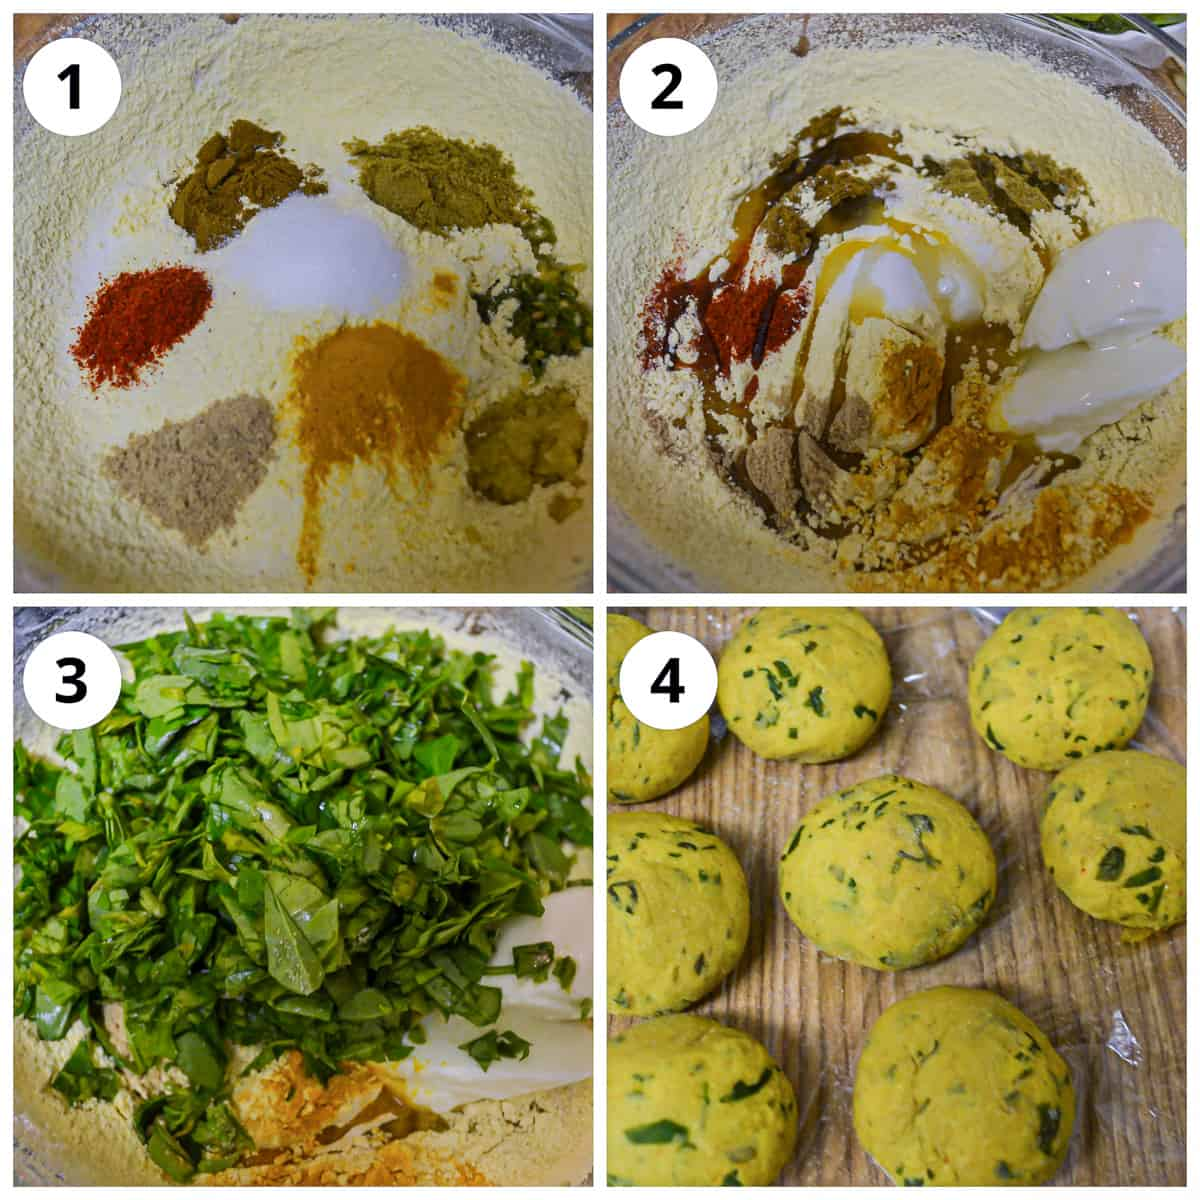 Steps to make methi thepla dough by mixing the flours, spices and methi leaves